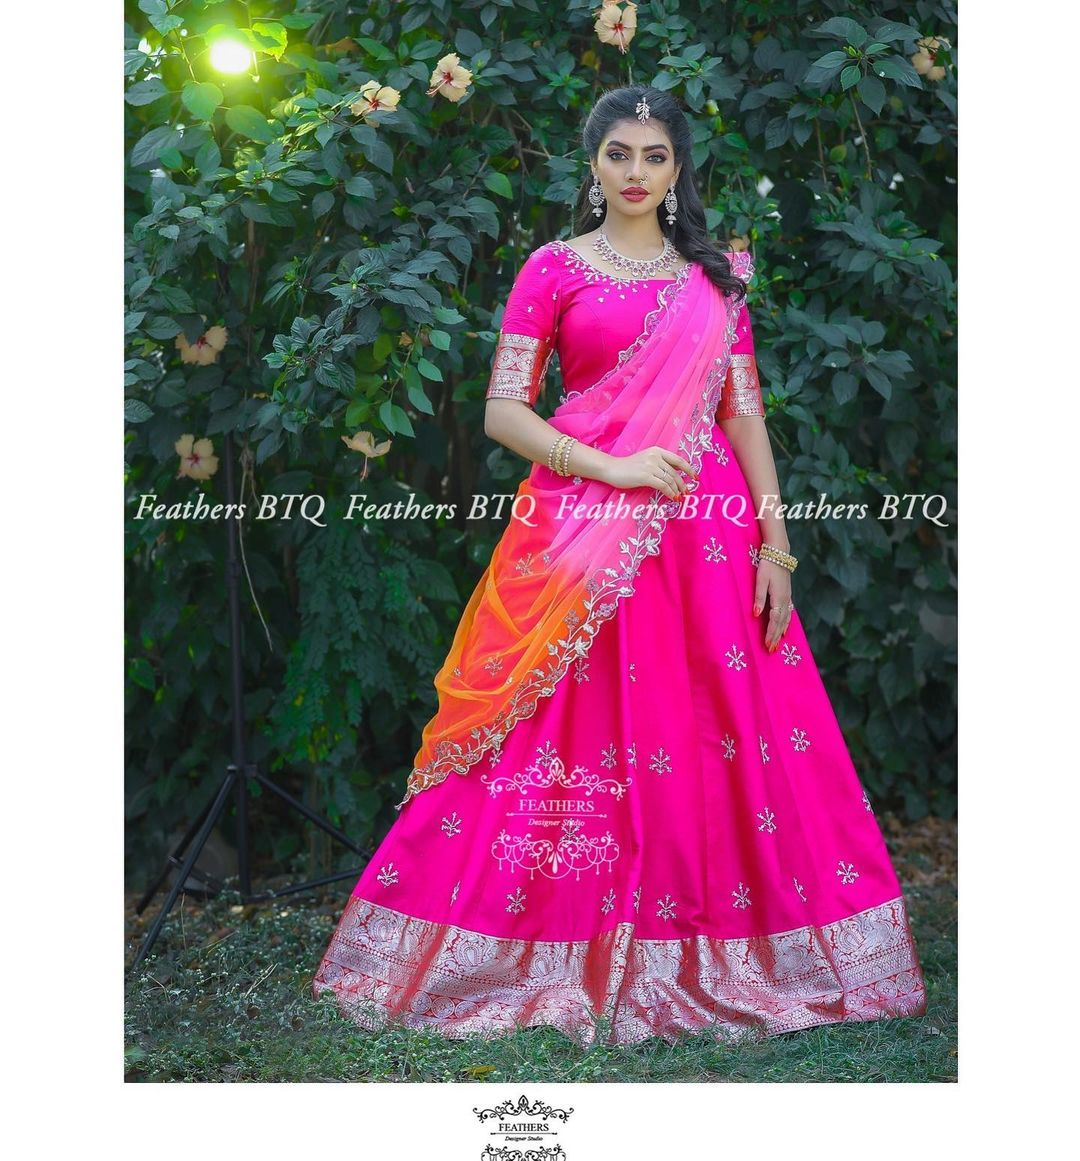 Beautiful pink color pattu langa and blouse with net dupatta. Blouse with hand embroidery work.  2021-05-10